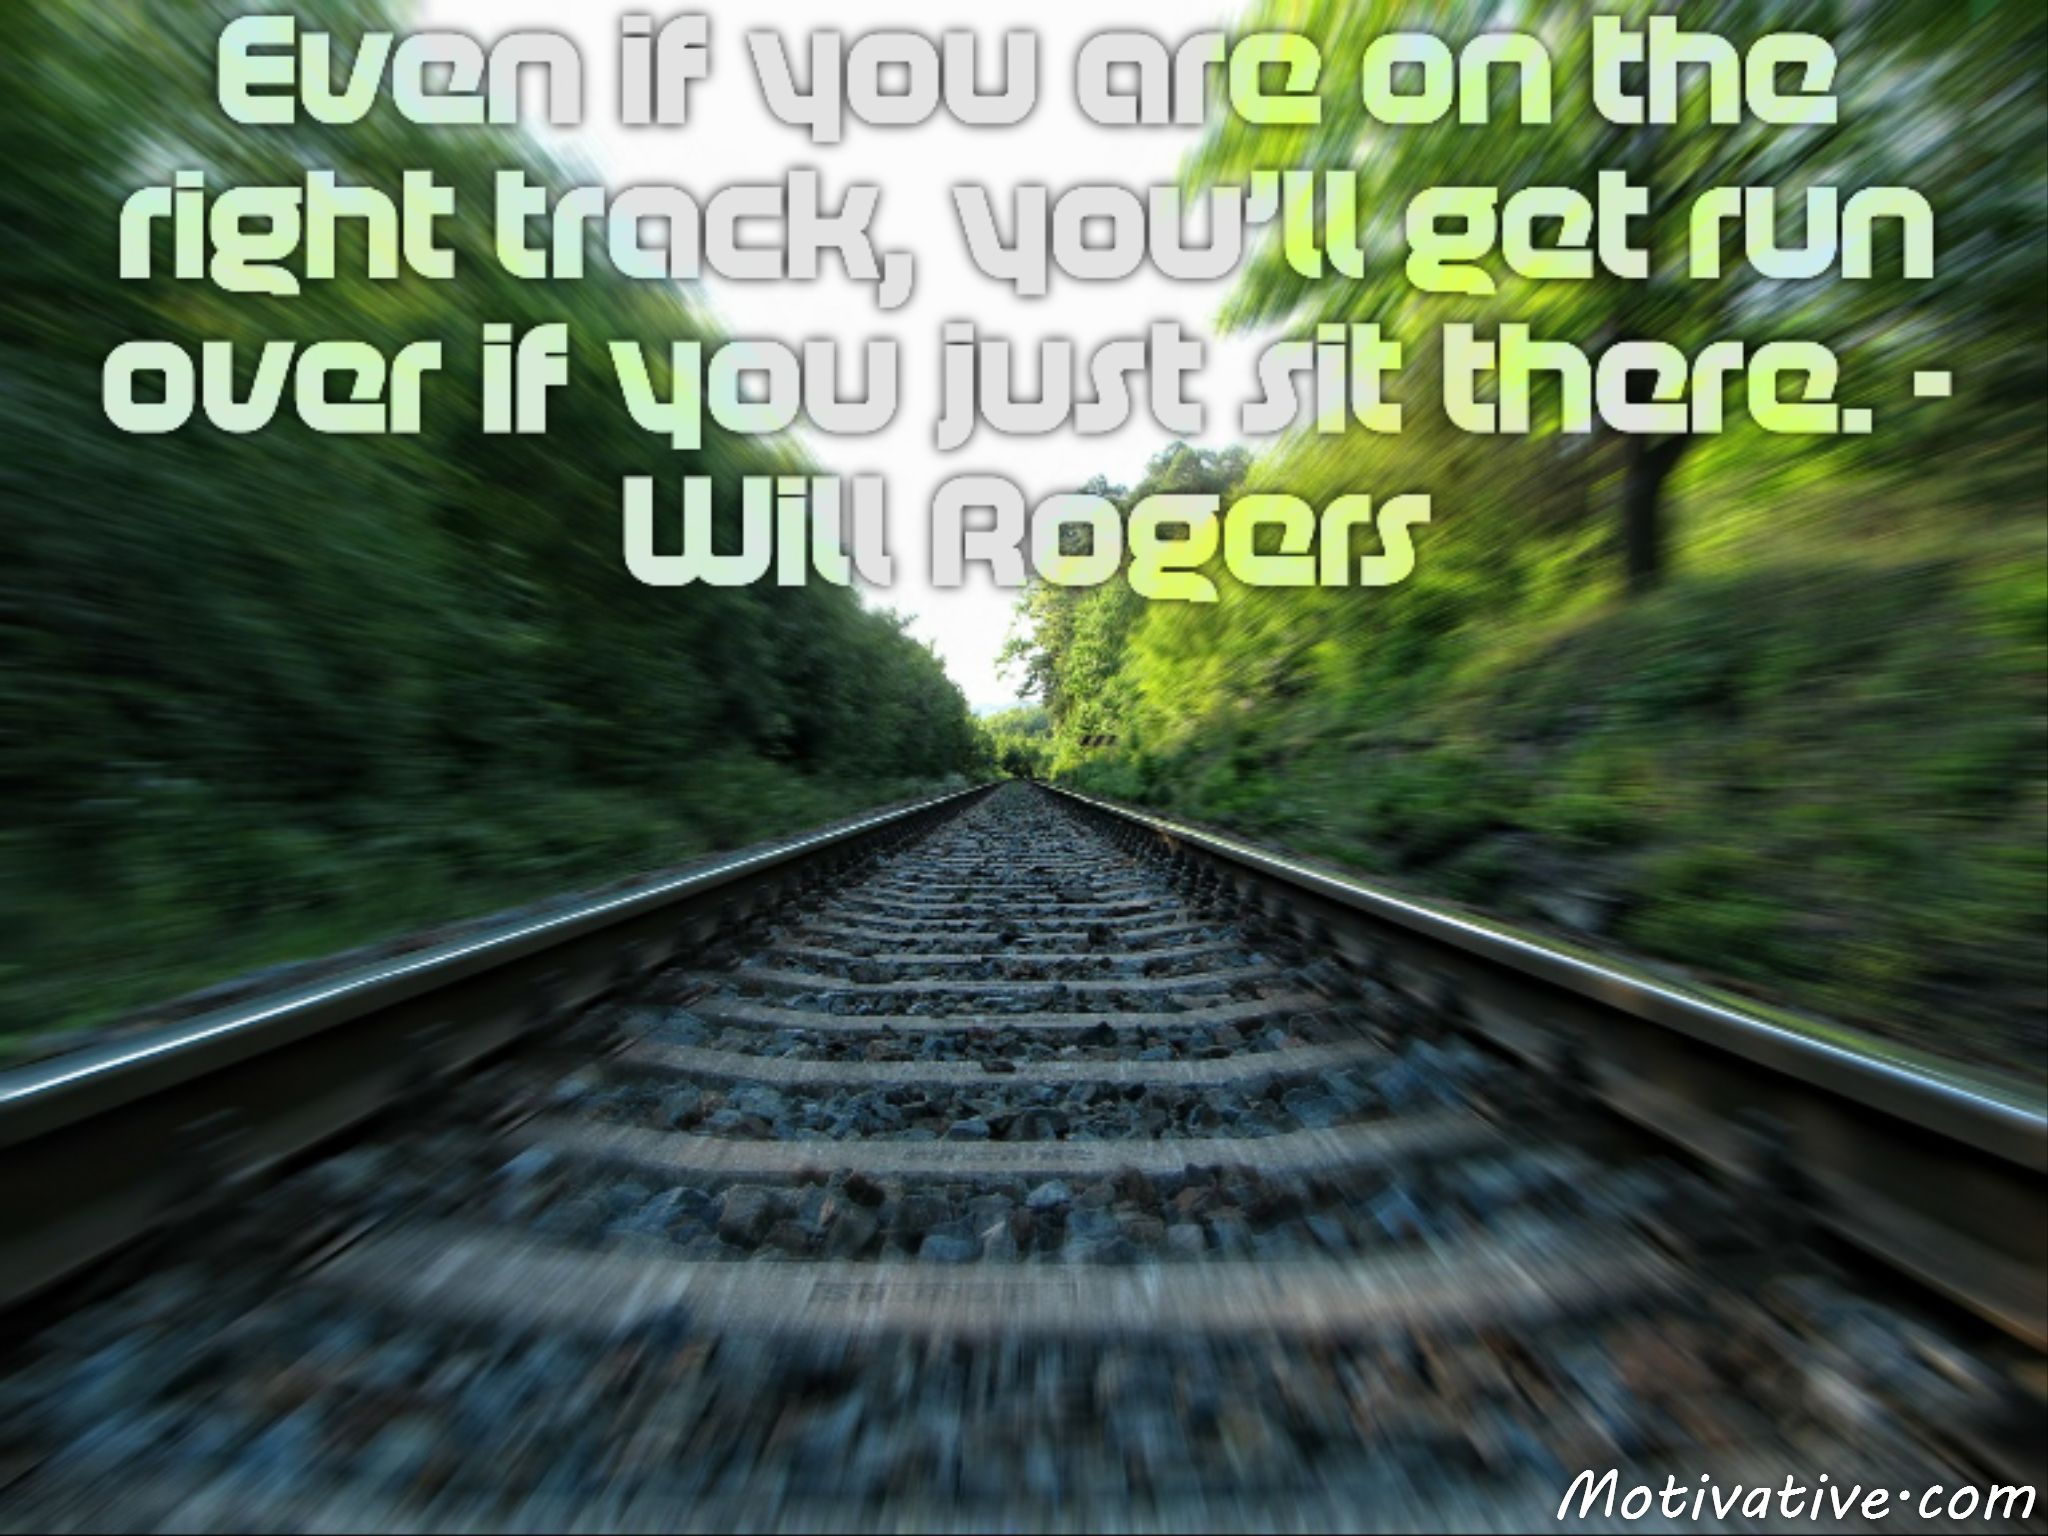 Even if you are on the right track, you'll get run over if you just sit there. – Will Rogers